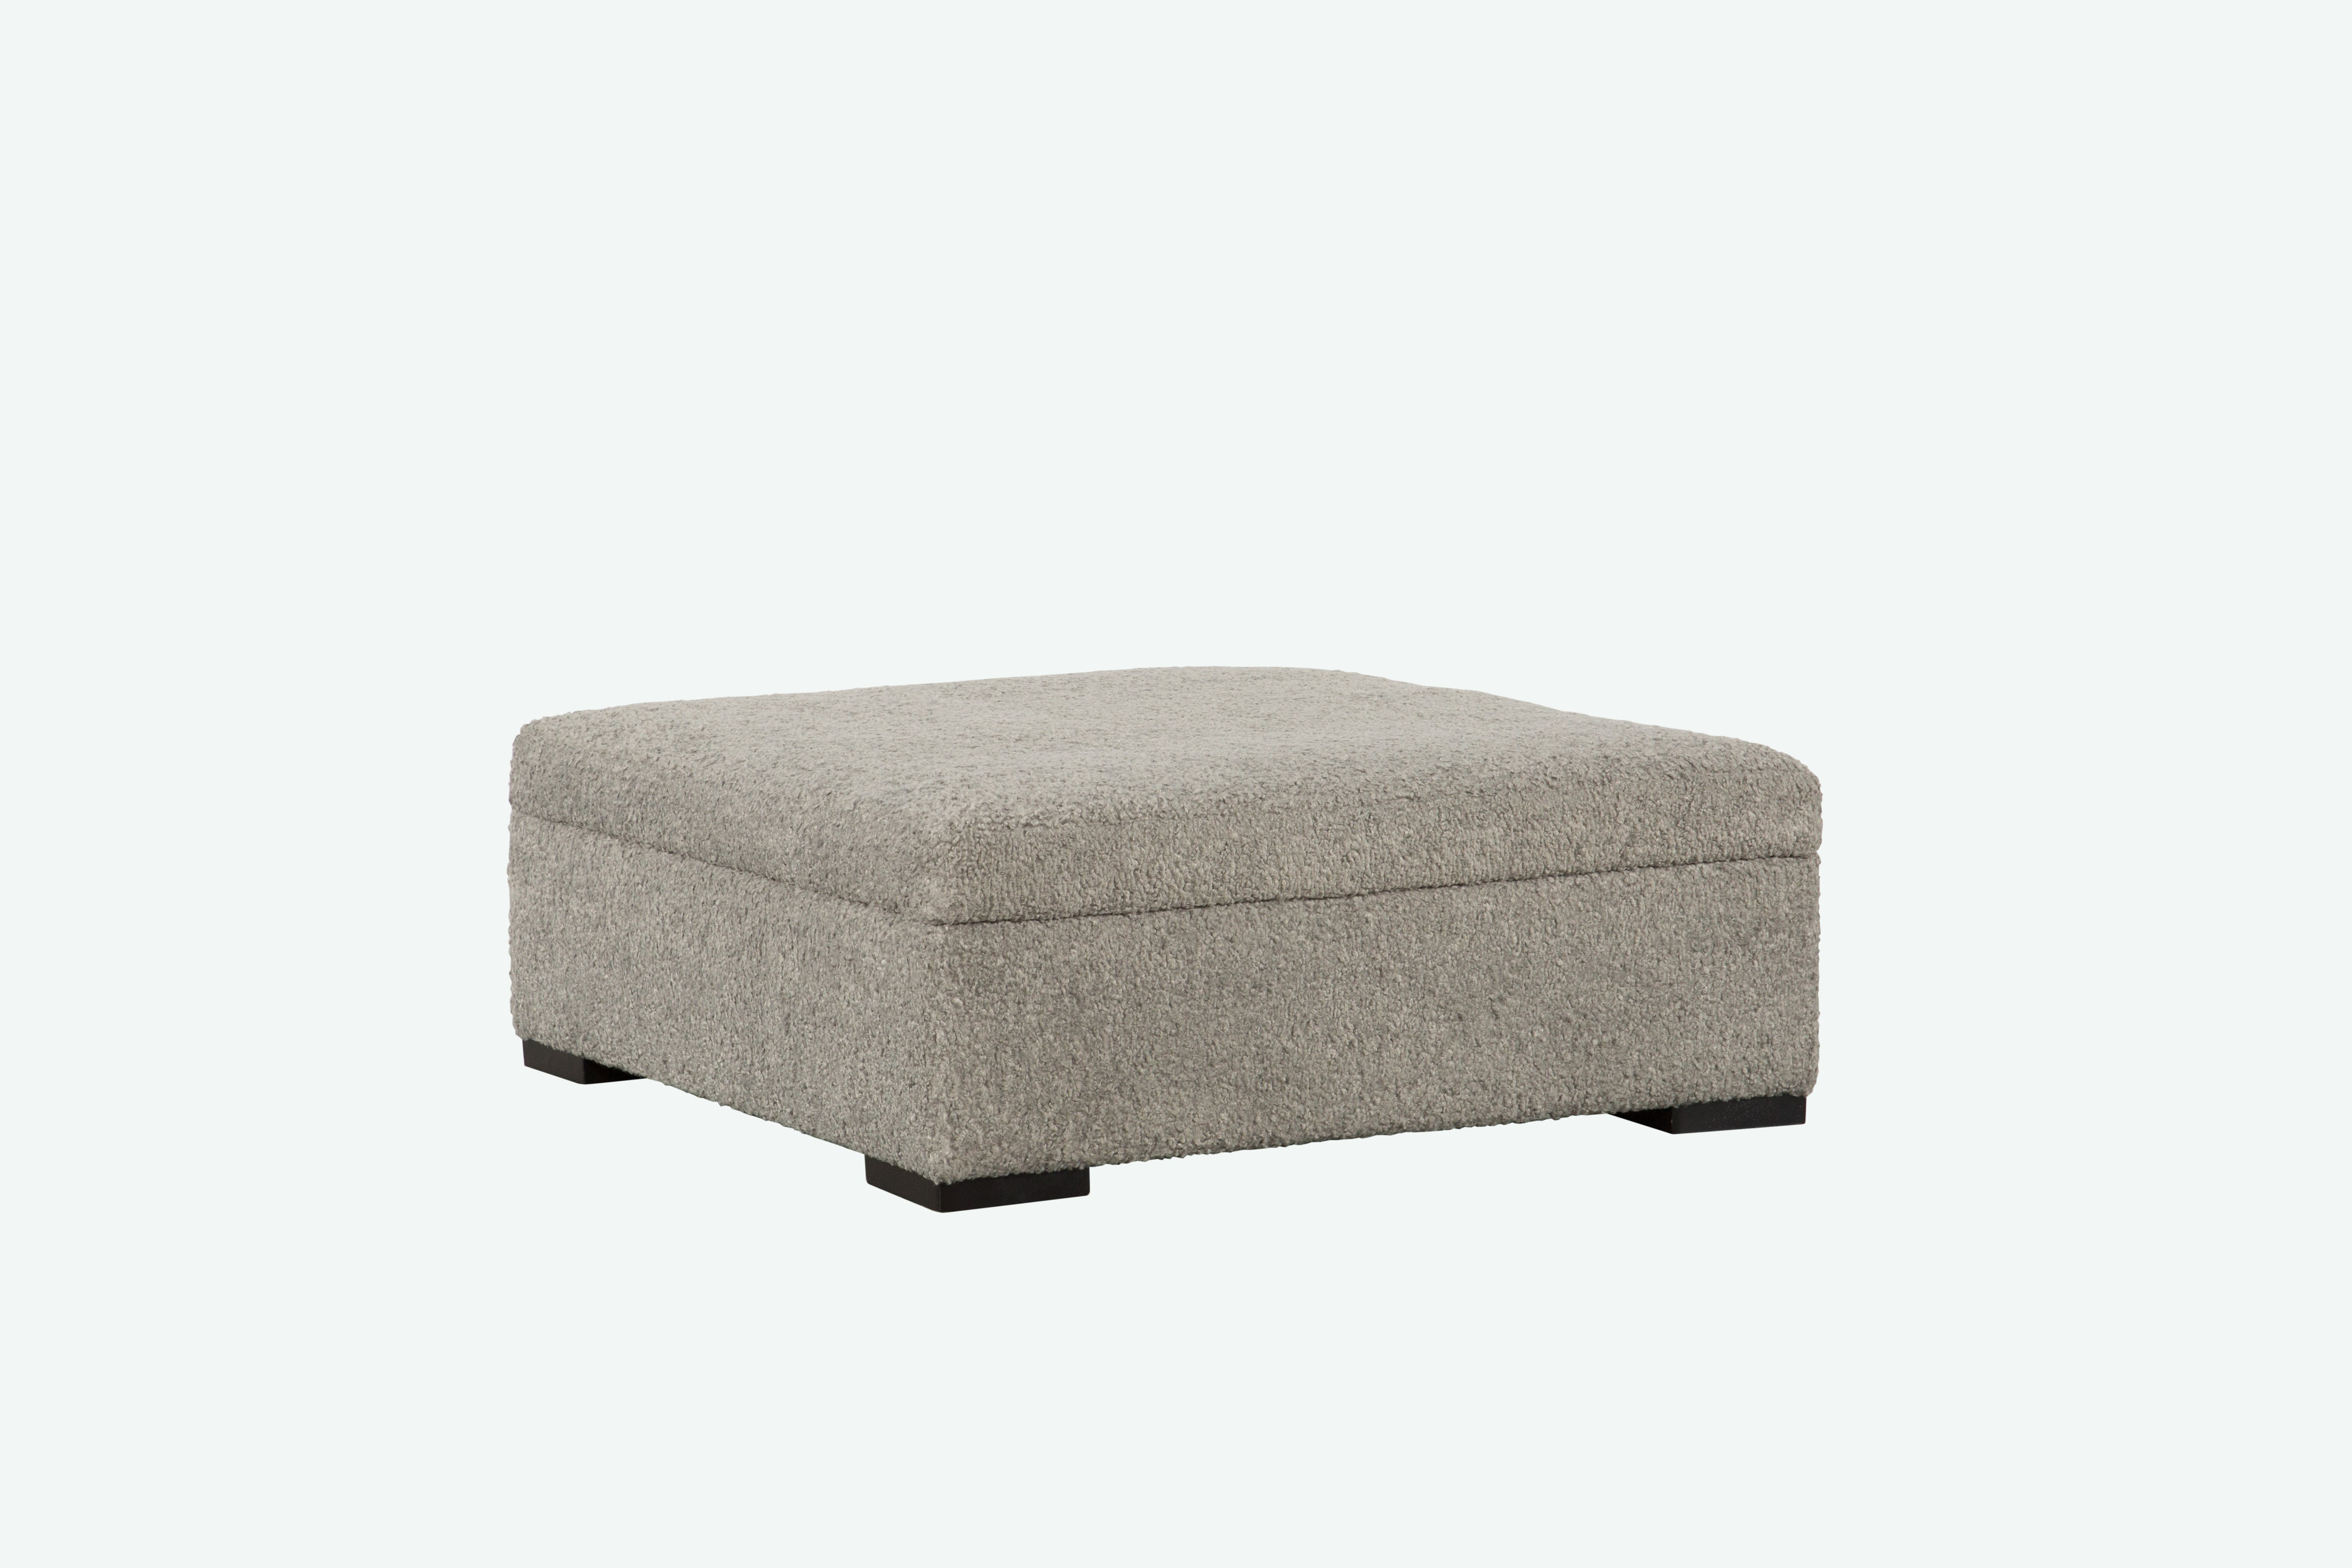 Nate Berkus Just Launched A Home Collection With Hubby Jeremiah Pertaining To Gwen Sofa Chairs By Nate Berkus And Jeremiah Brent (Photo 12 of 25)